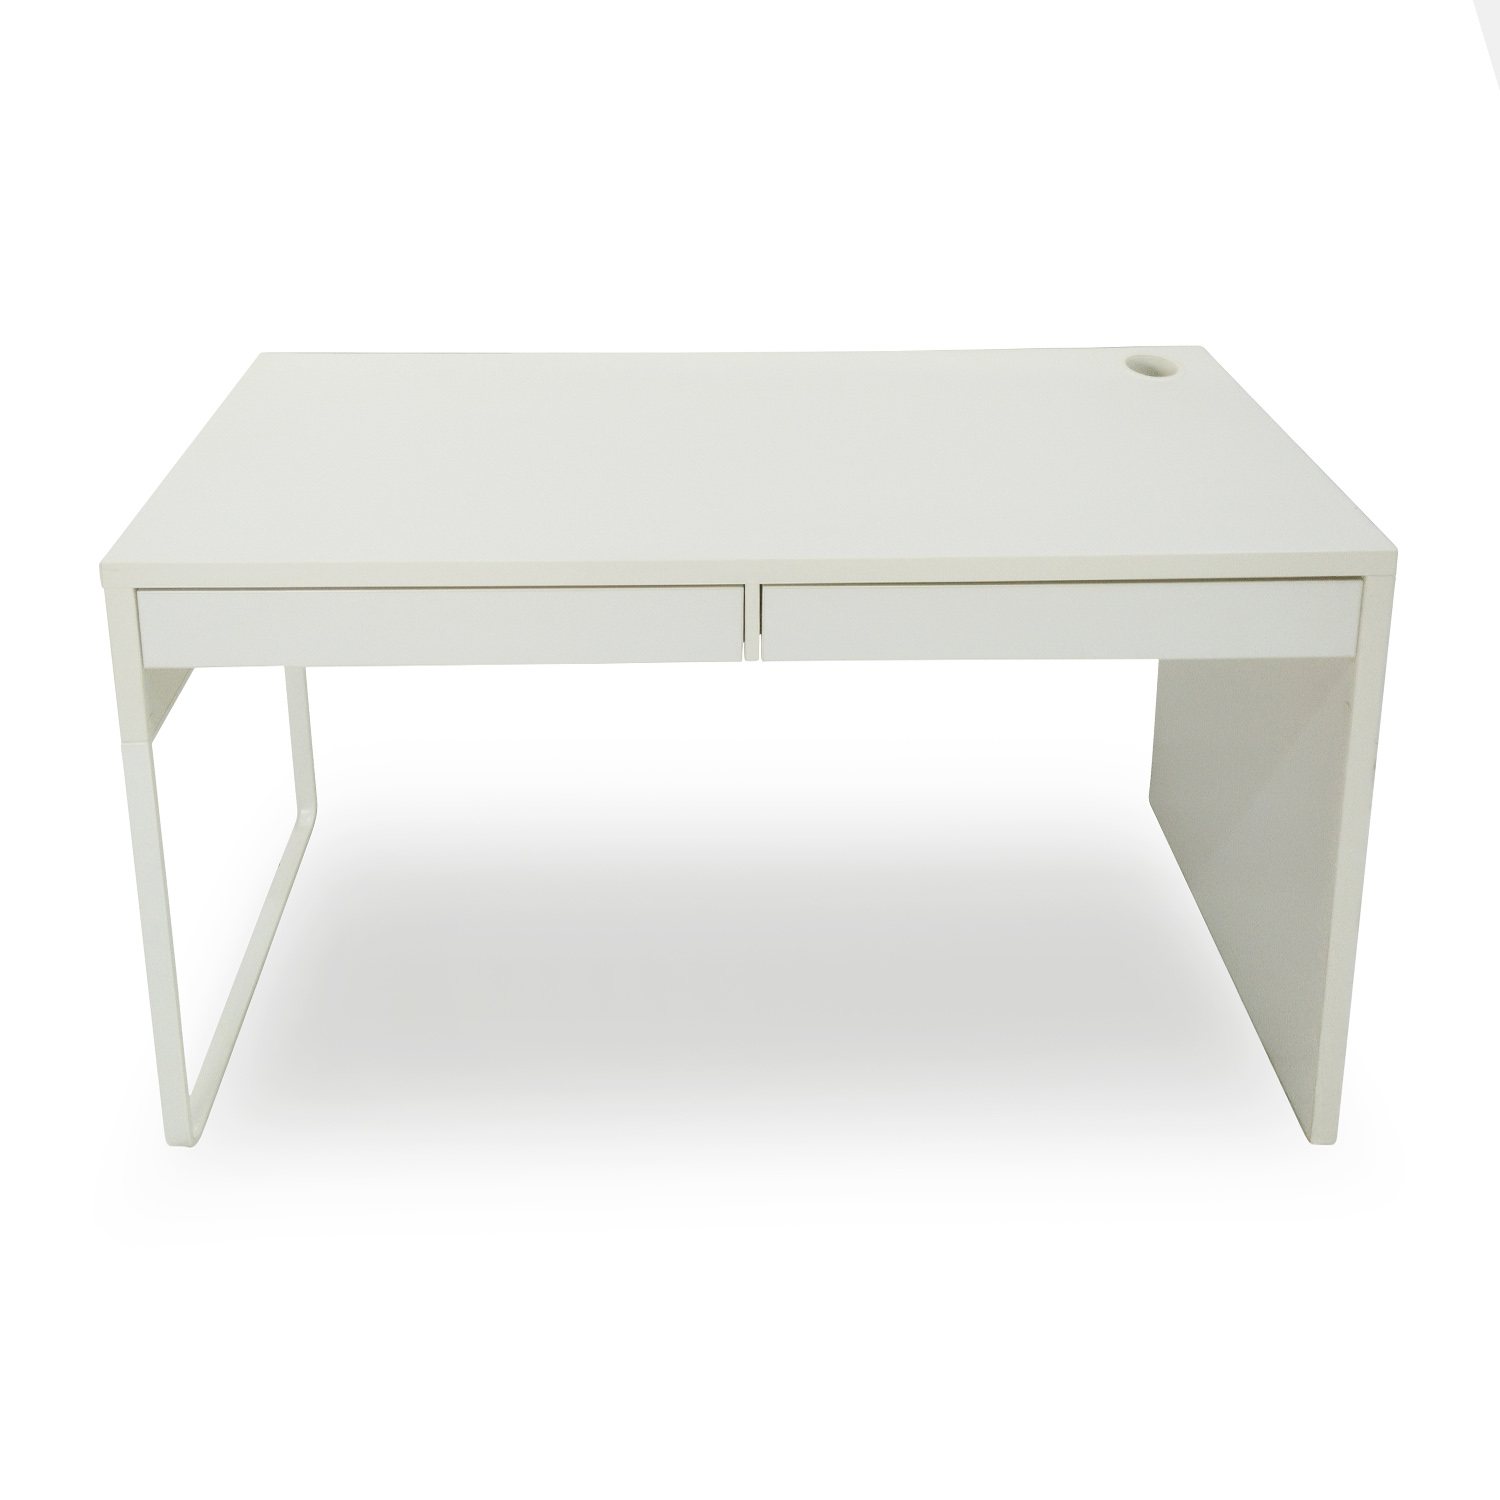 51 Off Ikea Micke White Modern Desk Tables